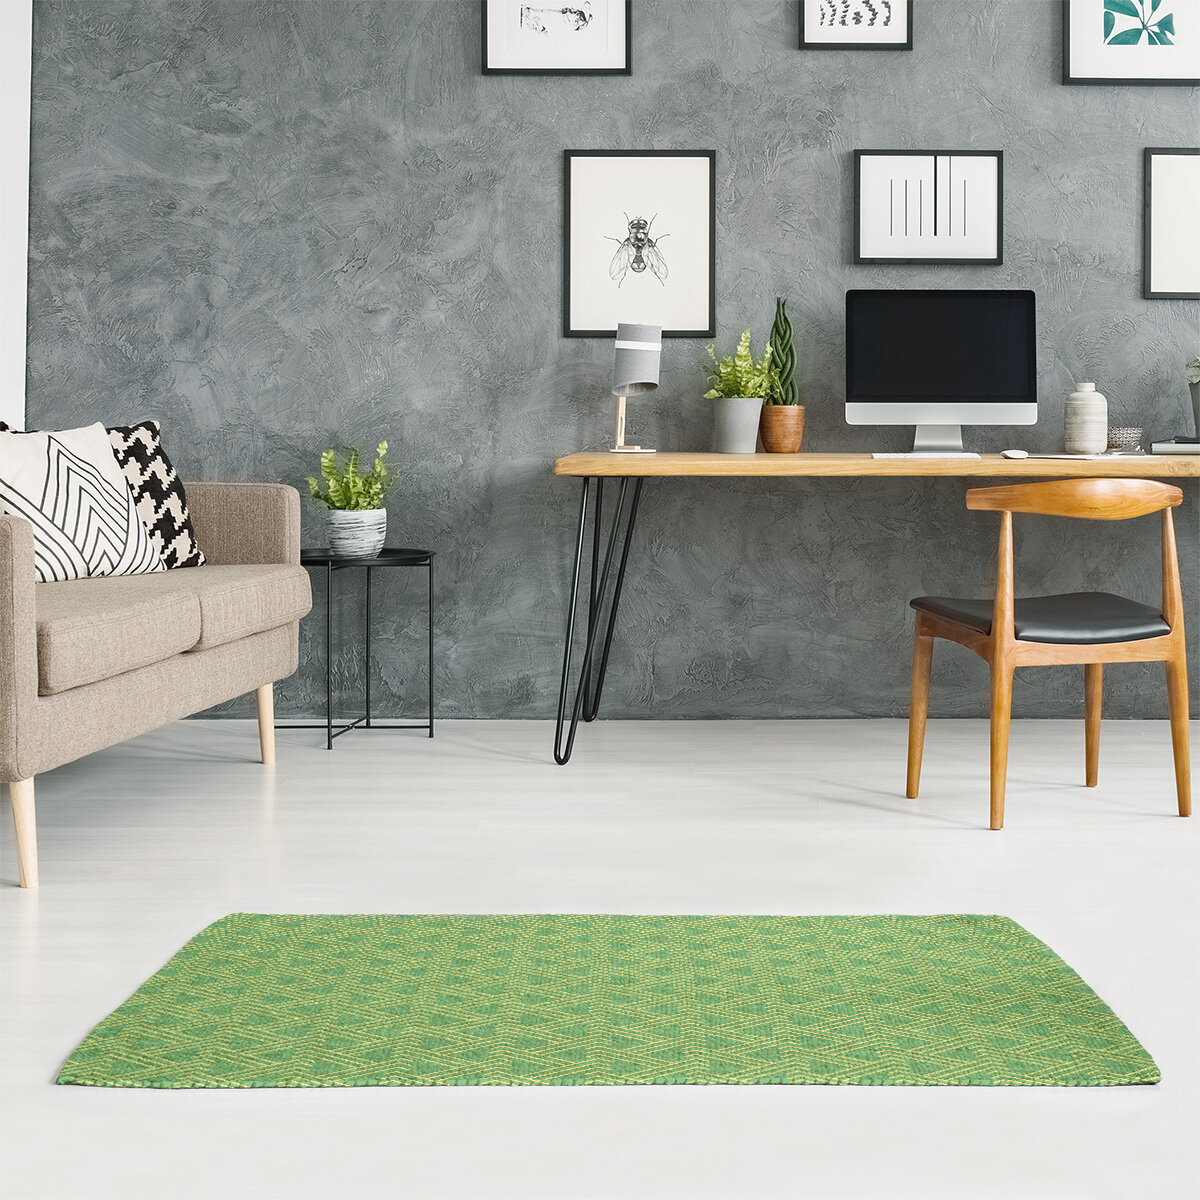 East Urban Home Zig Zag Light Yellow Green Area Rug Wayfair